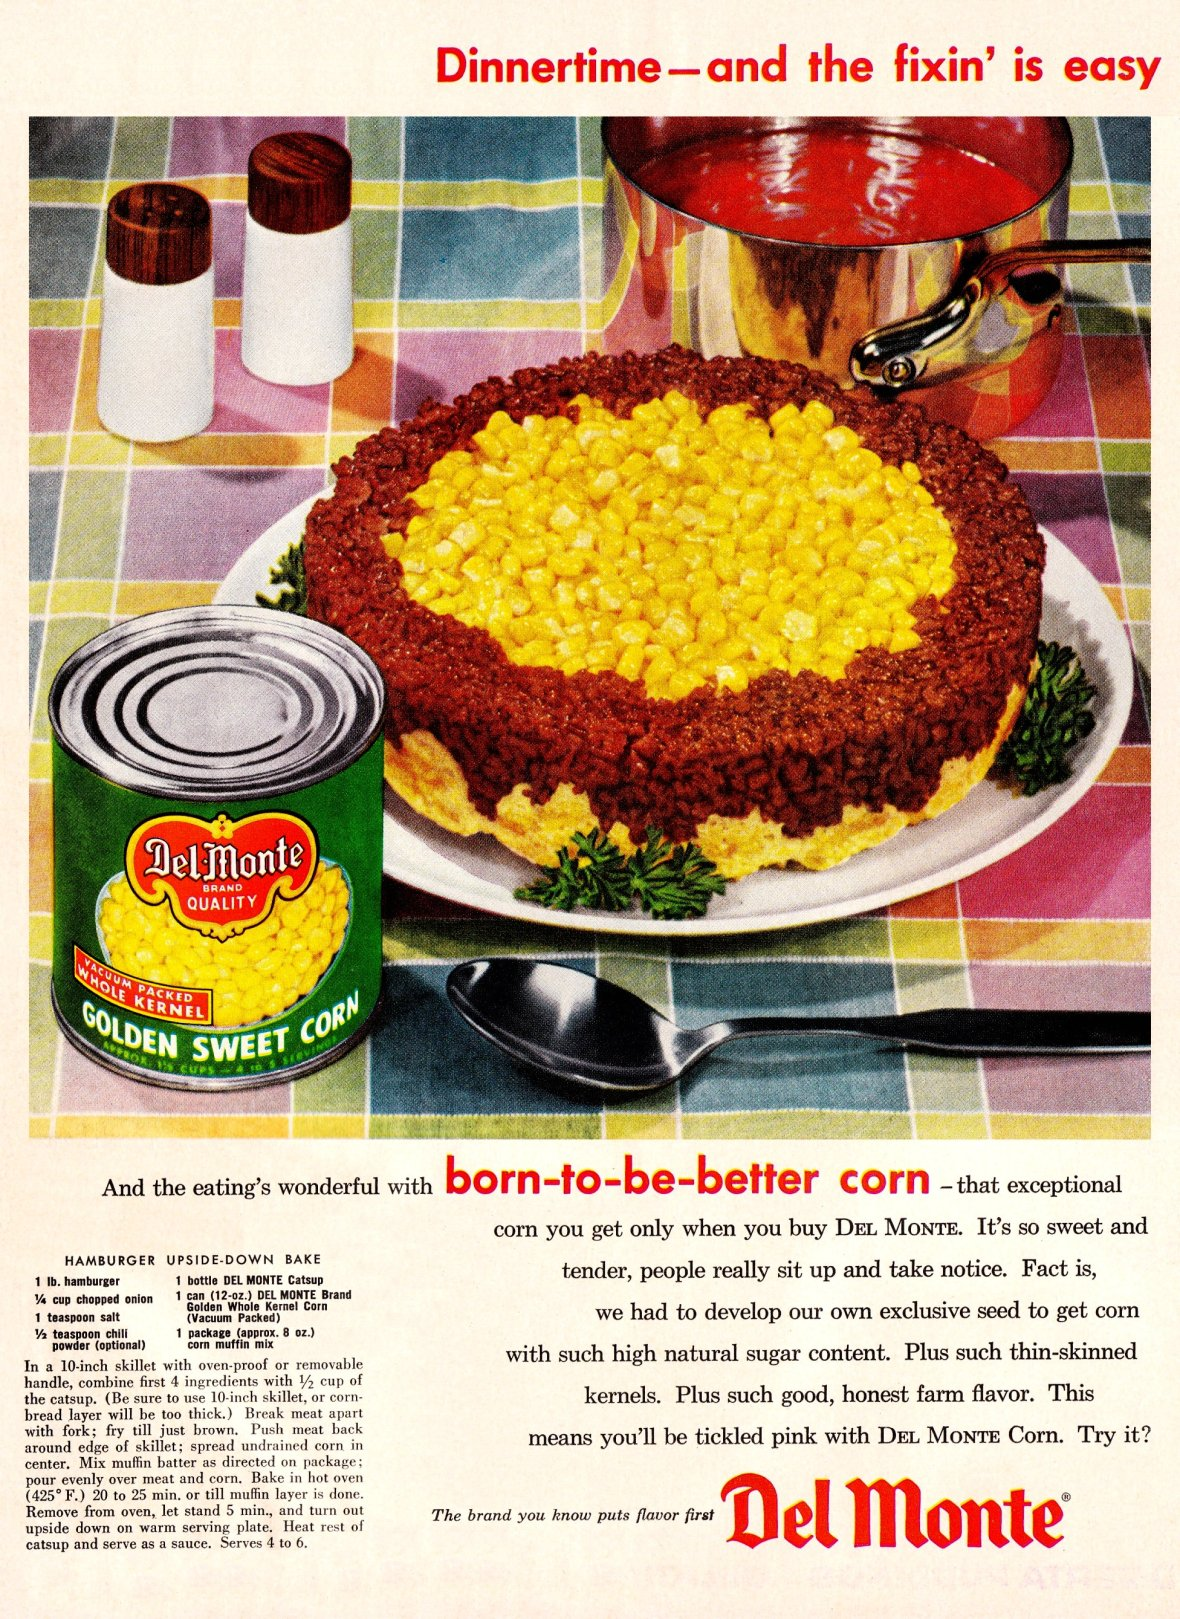 Del Monte - published in The American Home - May 1956